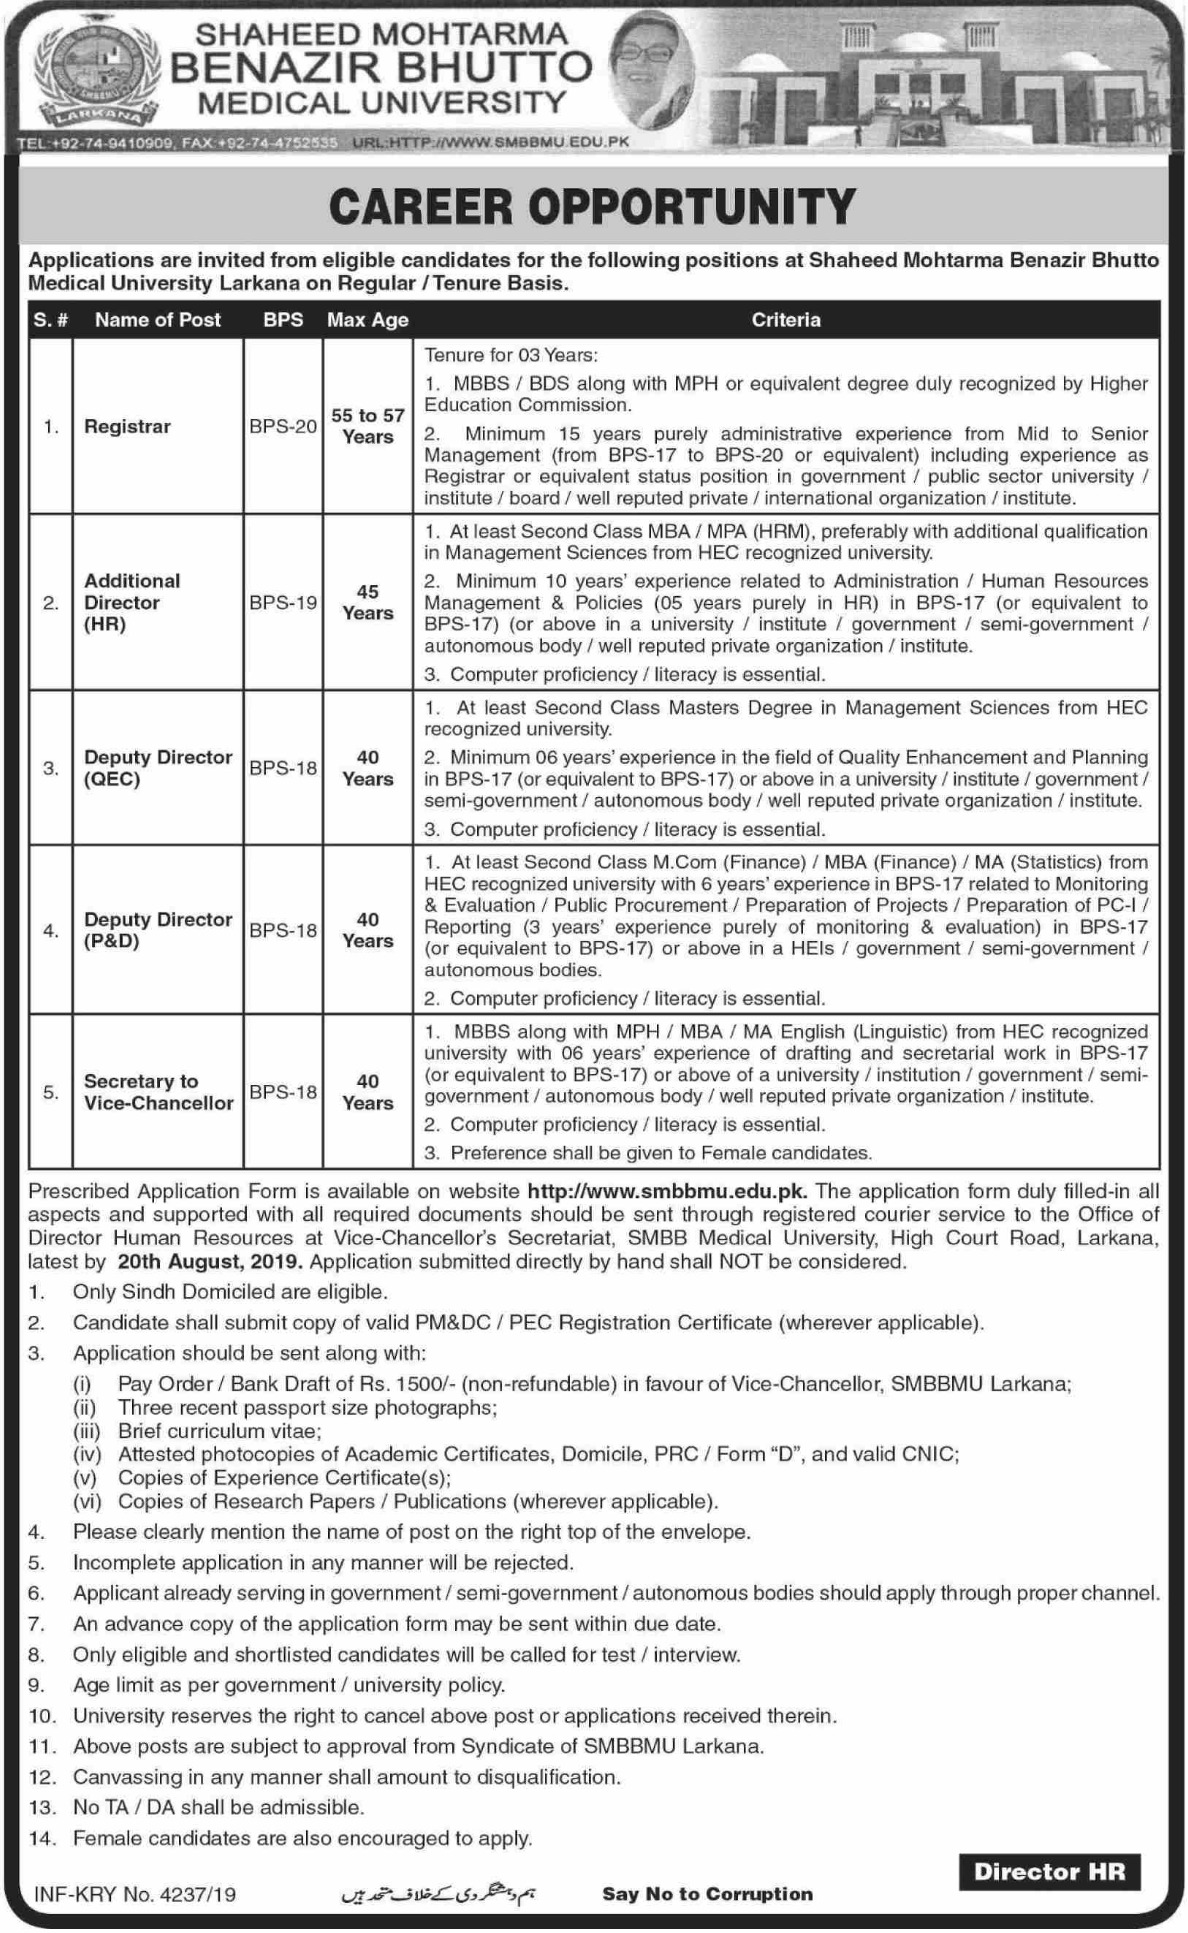 Shaheed Mohtarma Benazir Bhutto SMBB Medical University Larkana Jobs 2019 Download Application Form